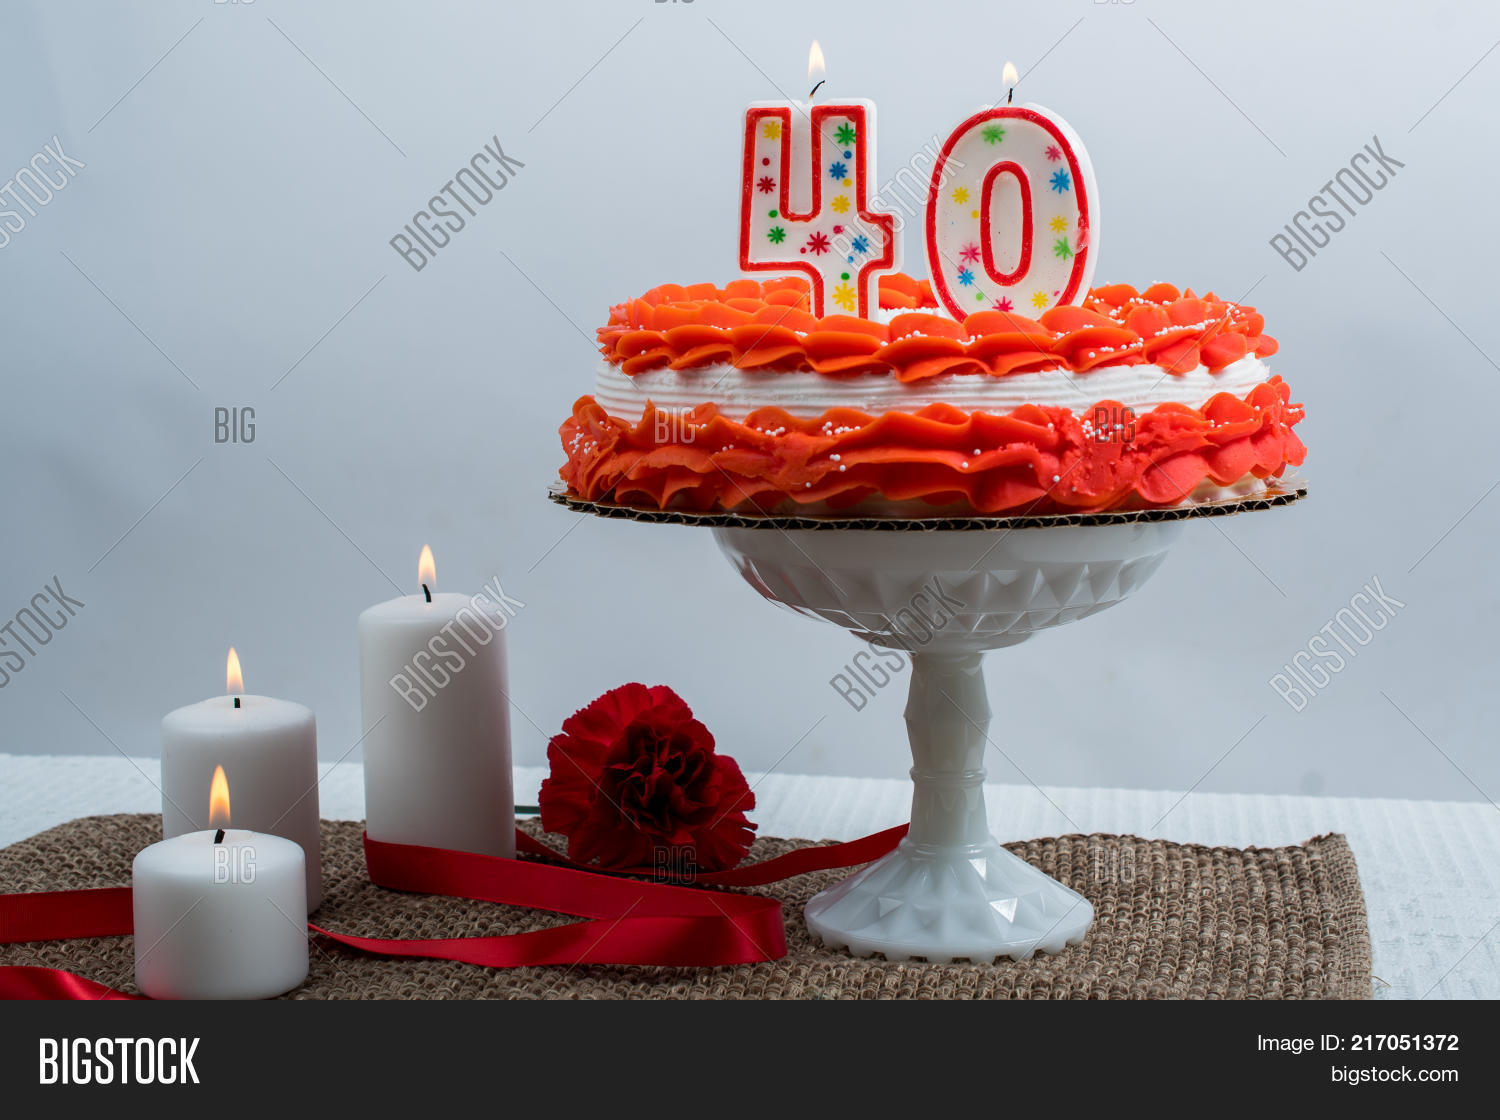 Frosted Cake 40 Candle Image Photo Free Trial Bigstock